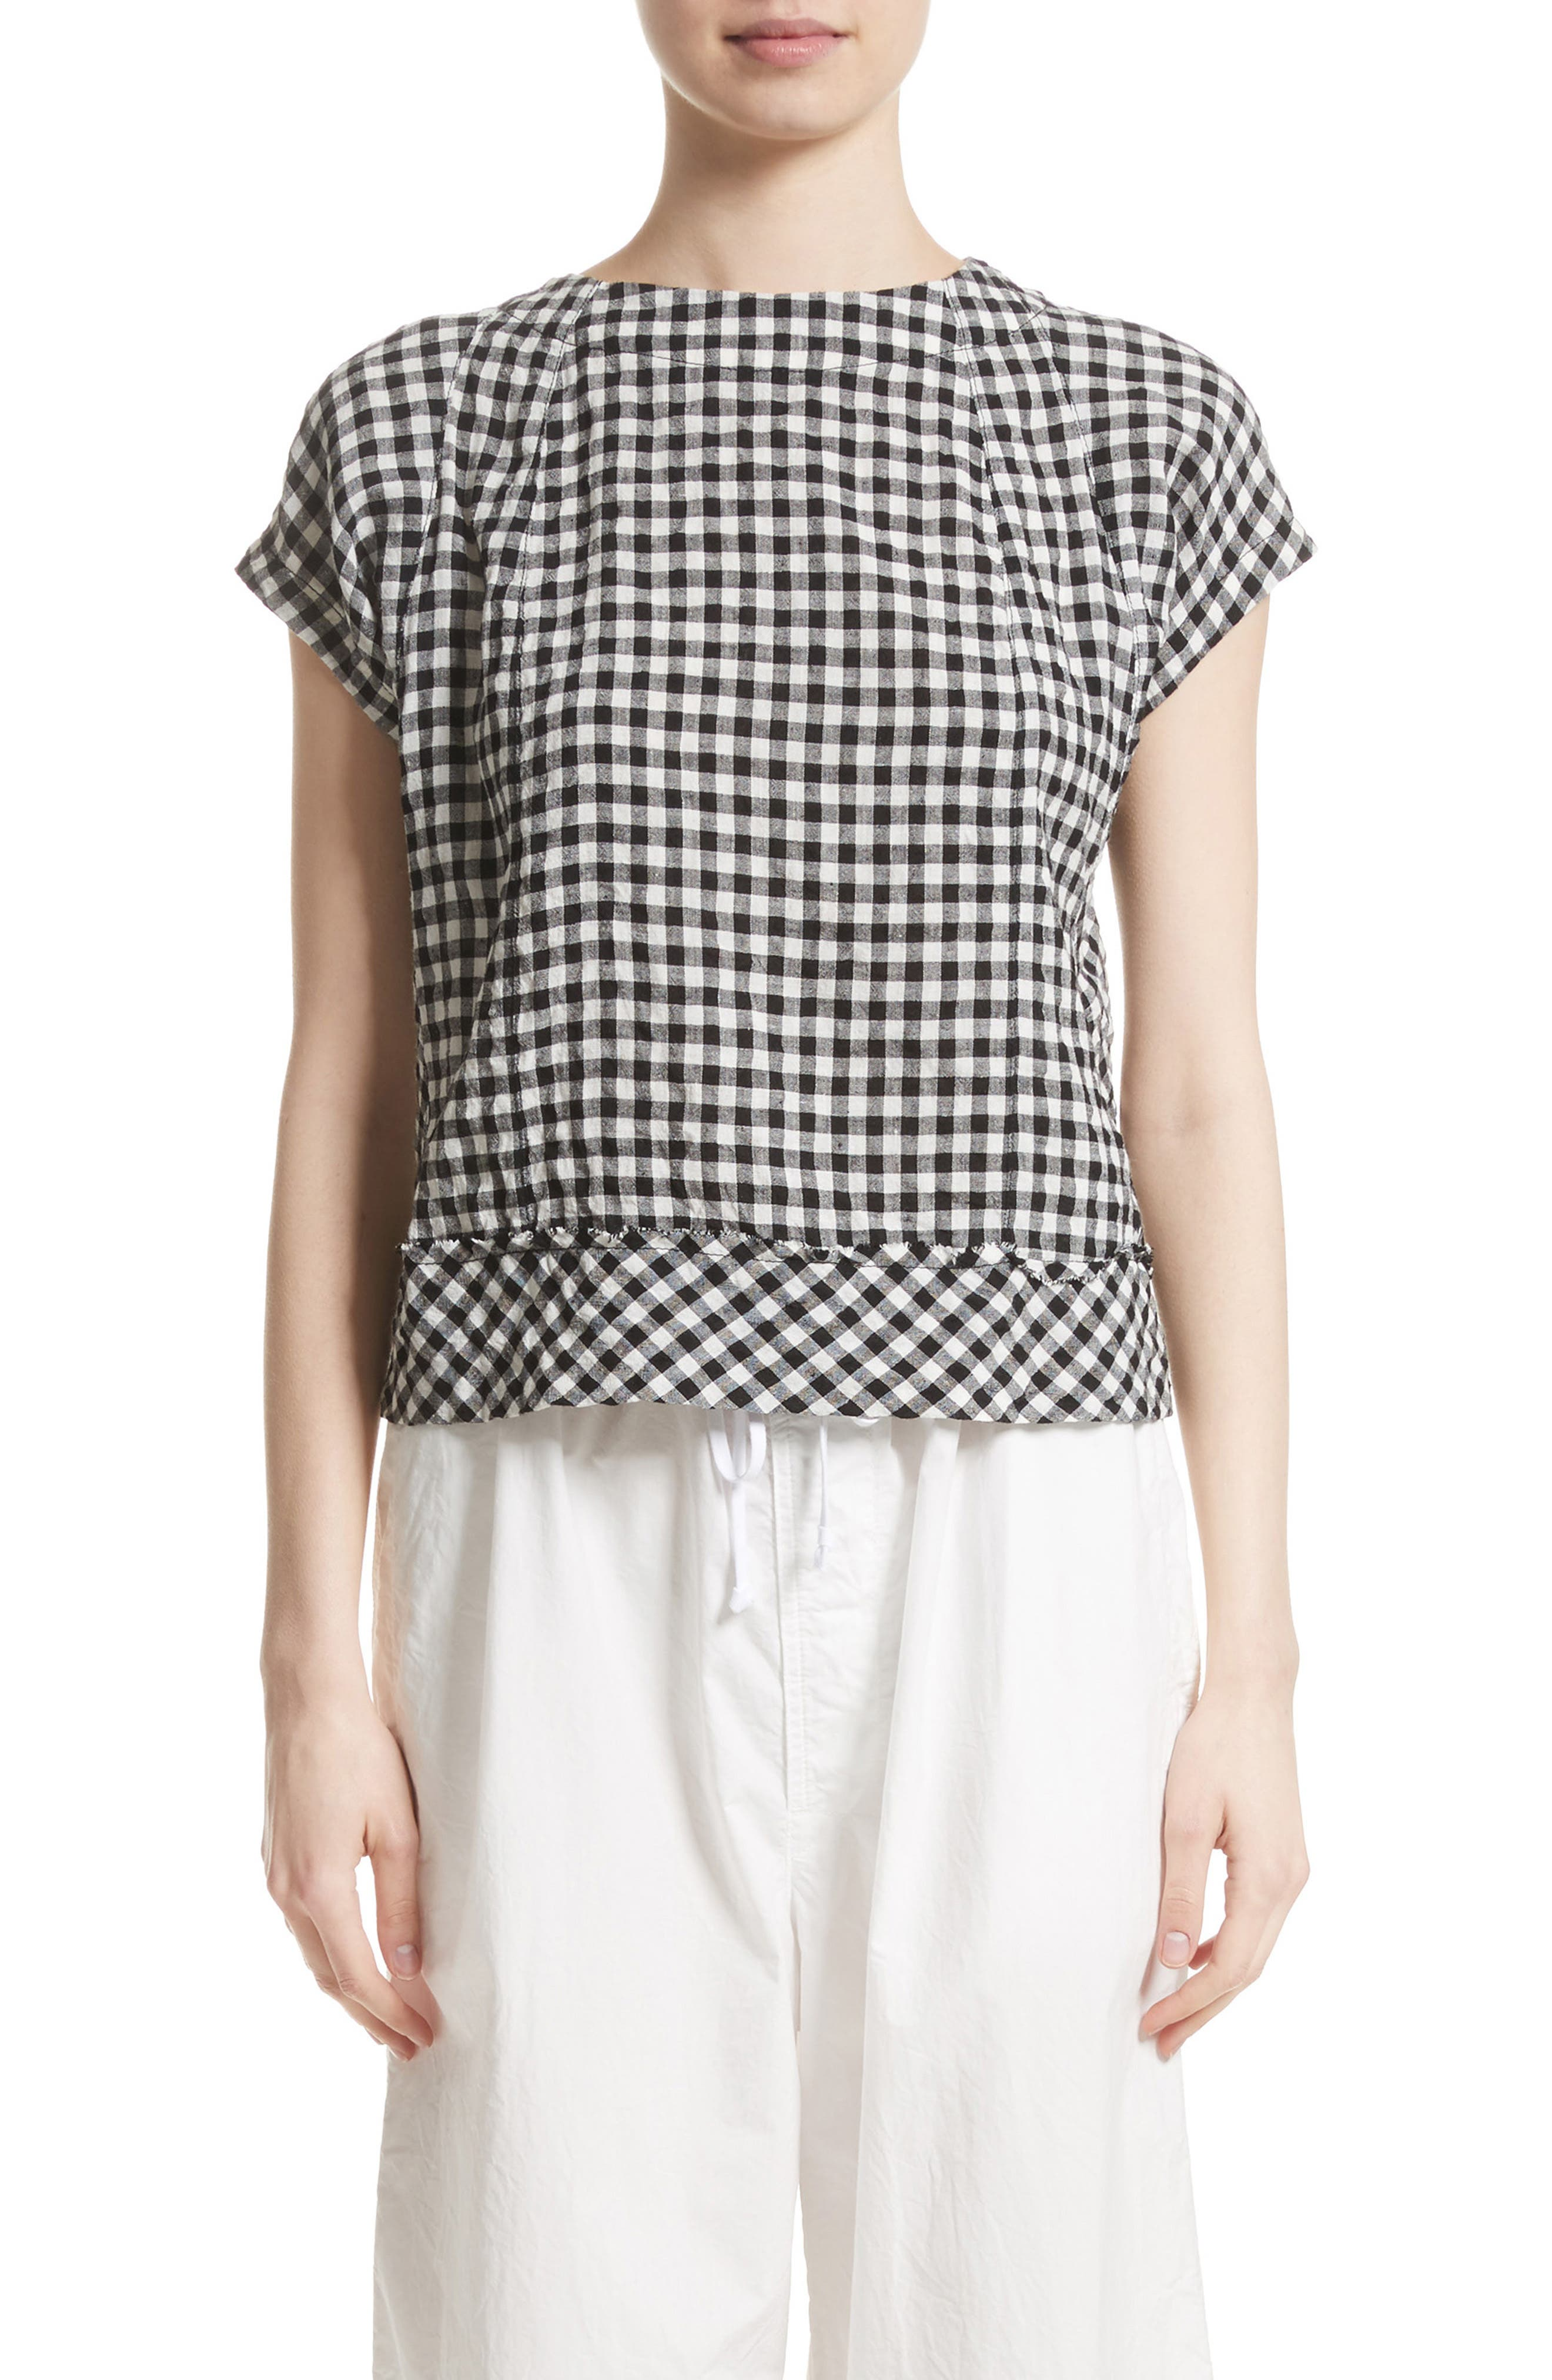 Gingham Check Blouse,                         Main,                         color, 001